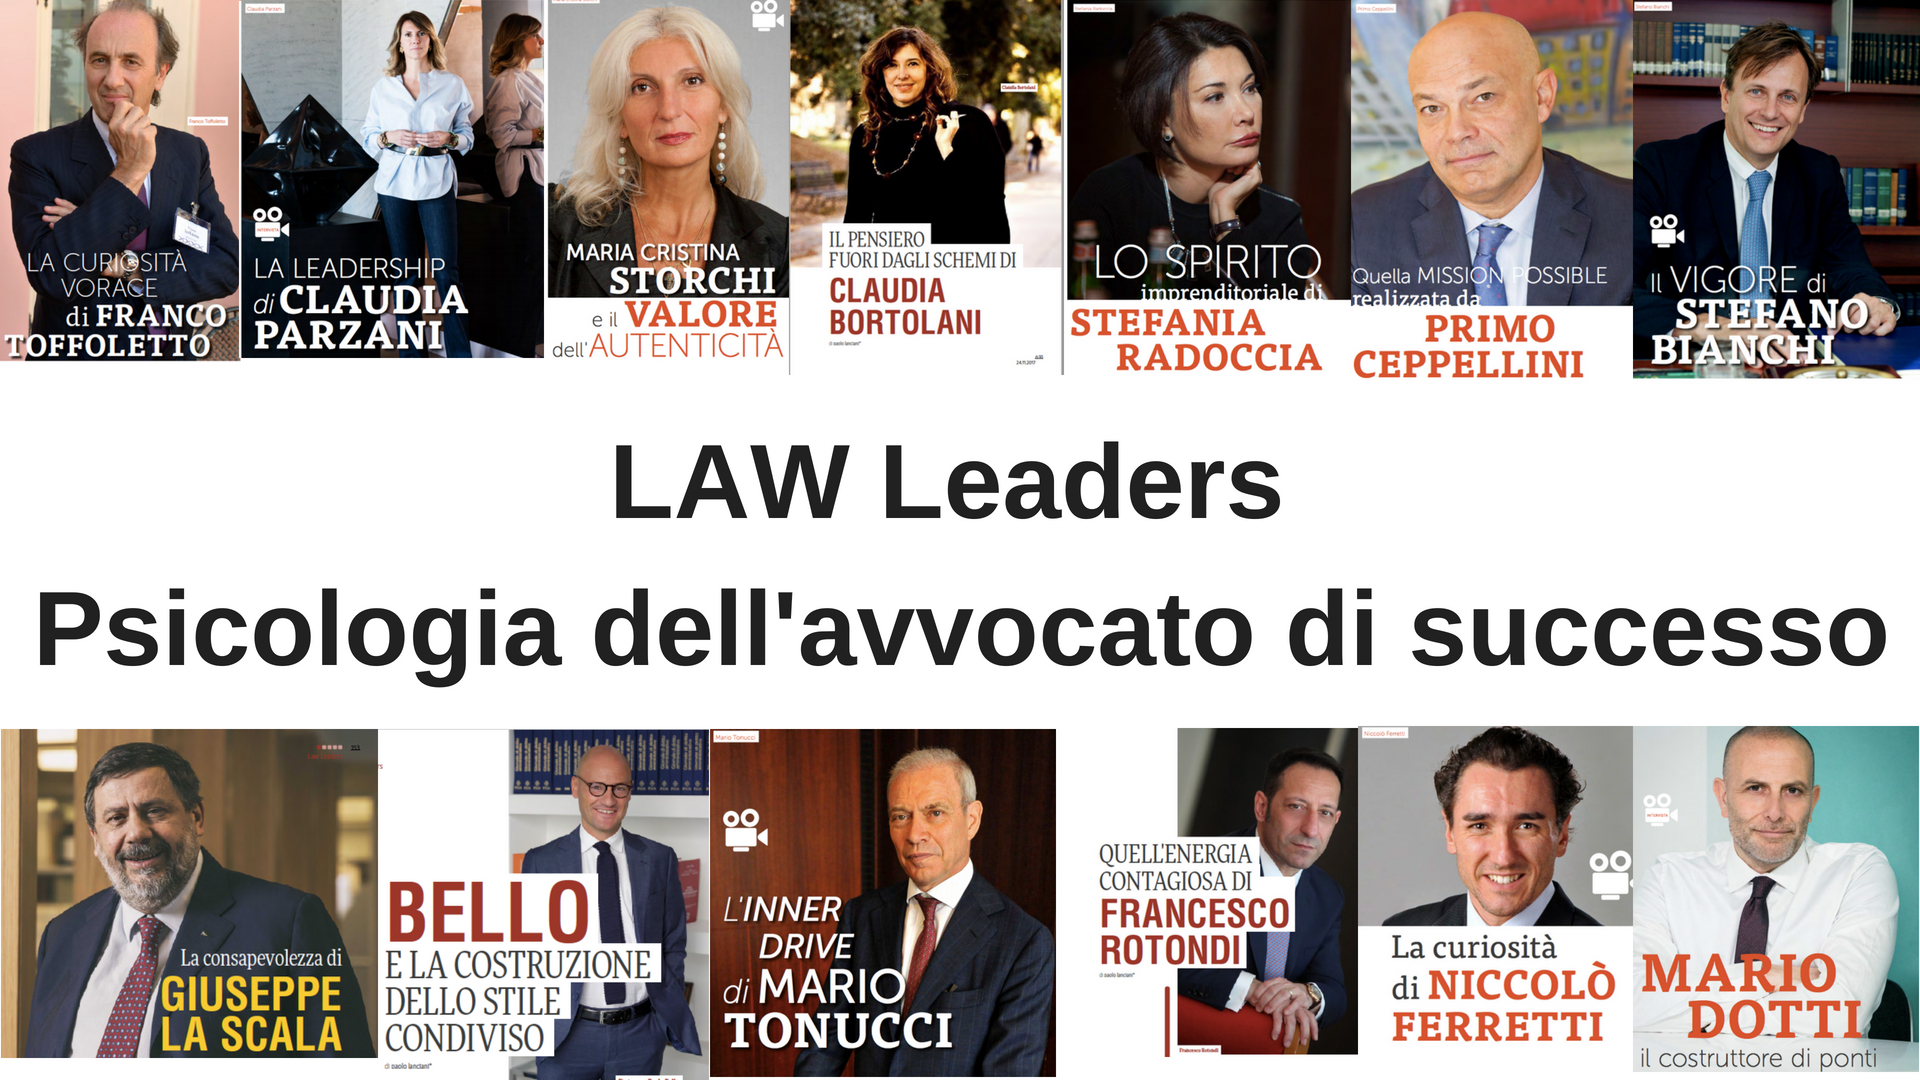 LAW Leaders Psicologia dellavvocato di successojpg